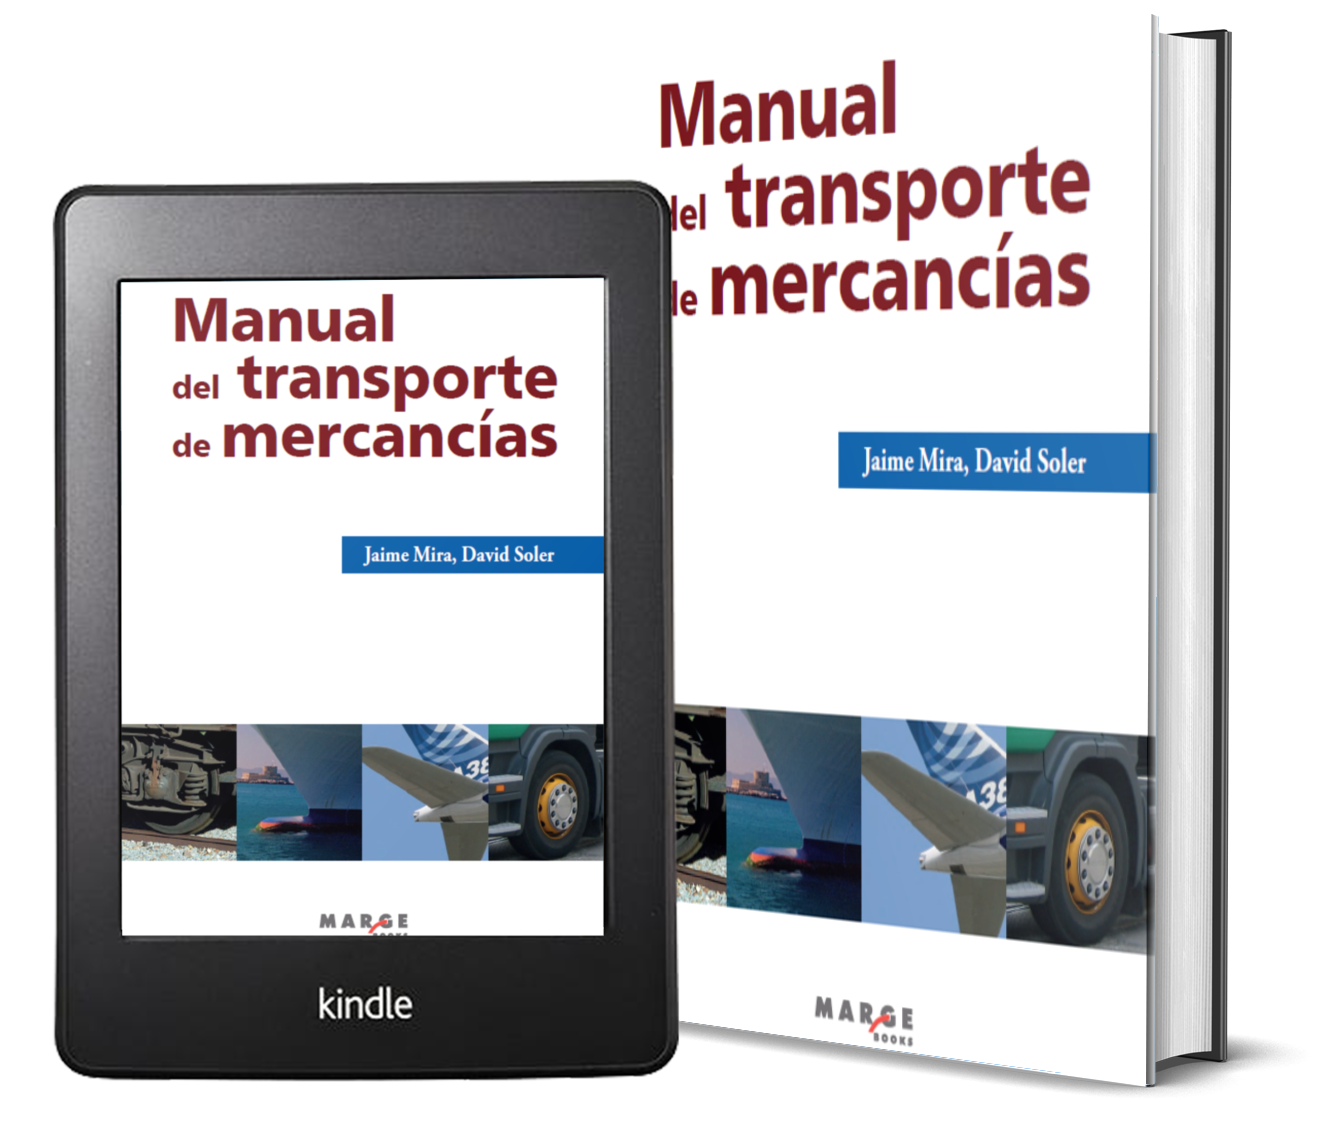 Manualdel transporte de mercancías - Jaime Mira - David Soler - EBOOK - PDF